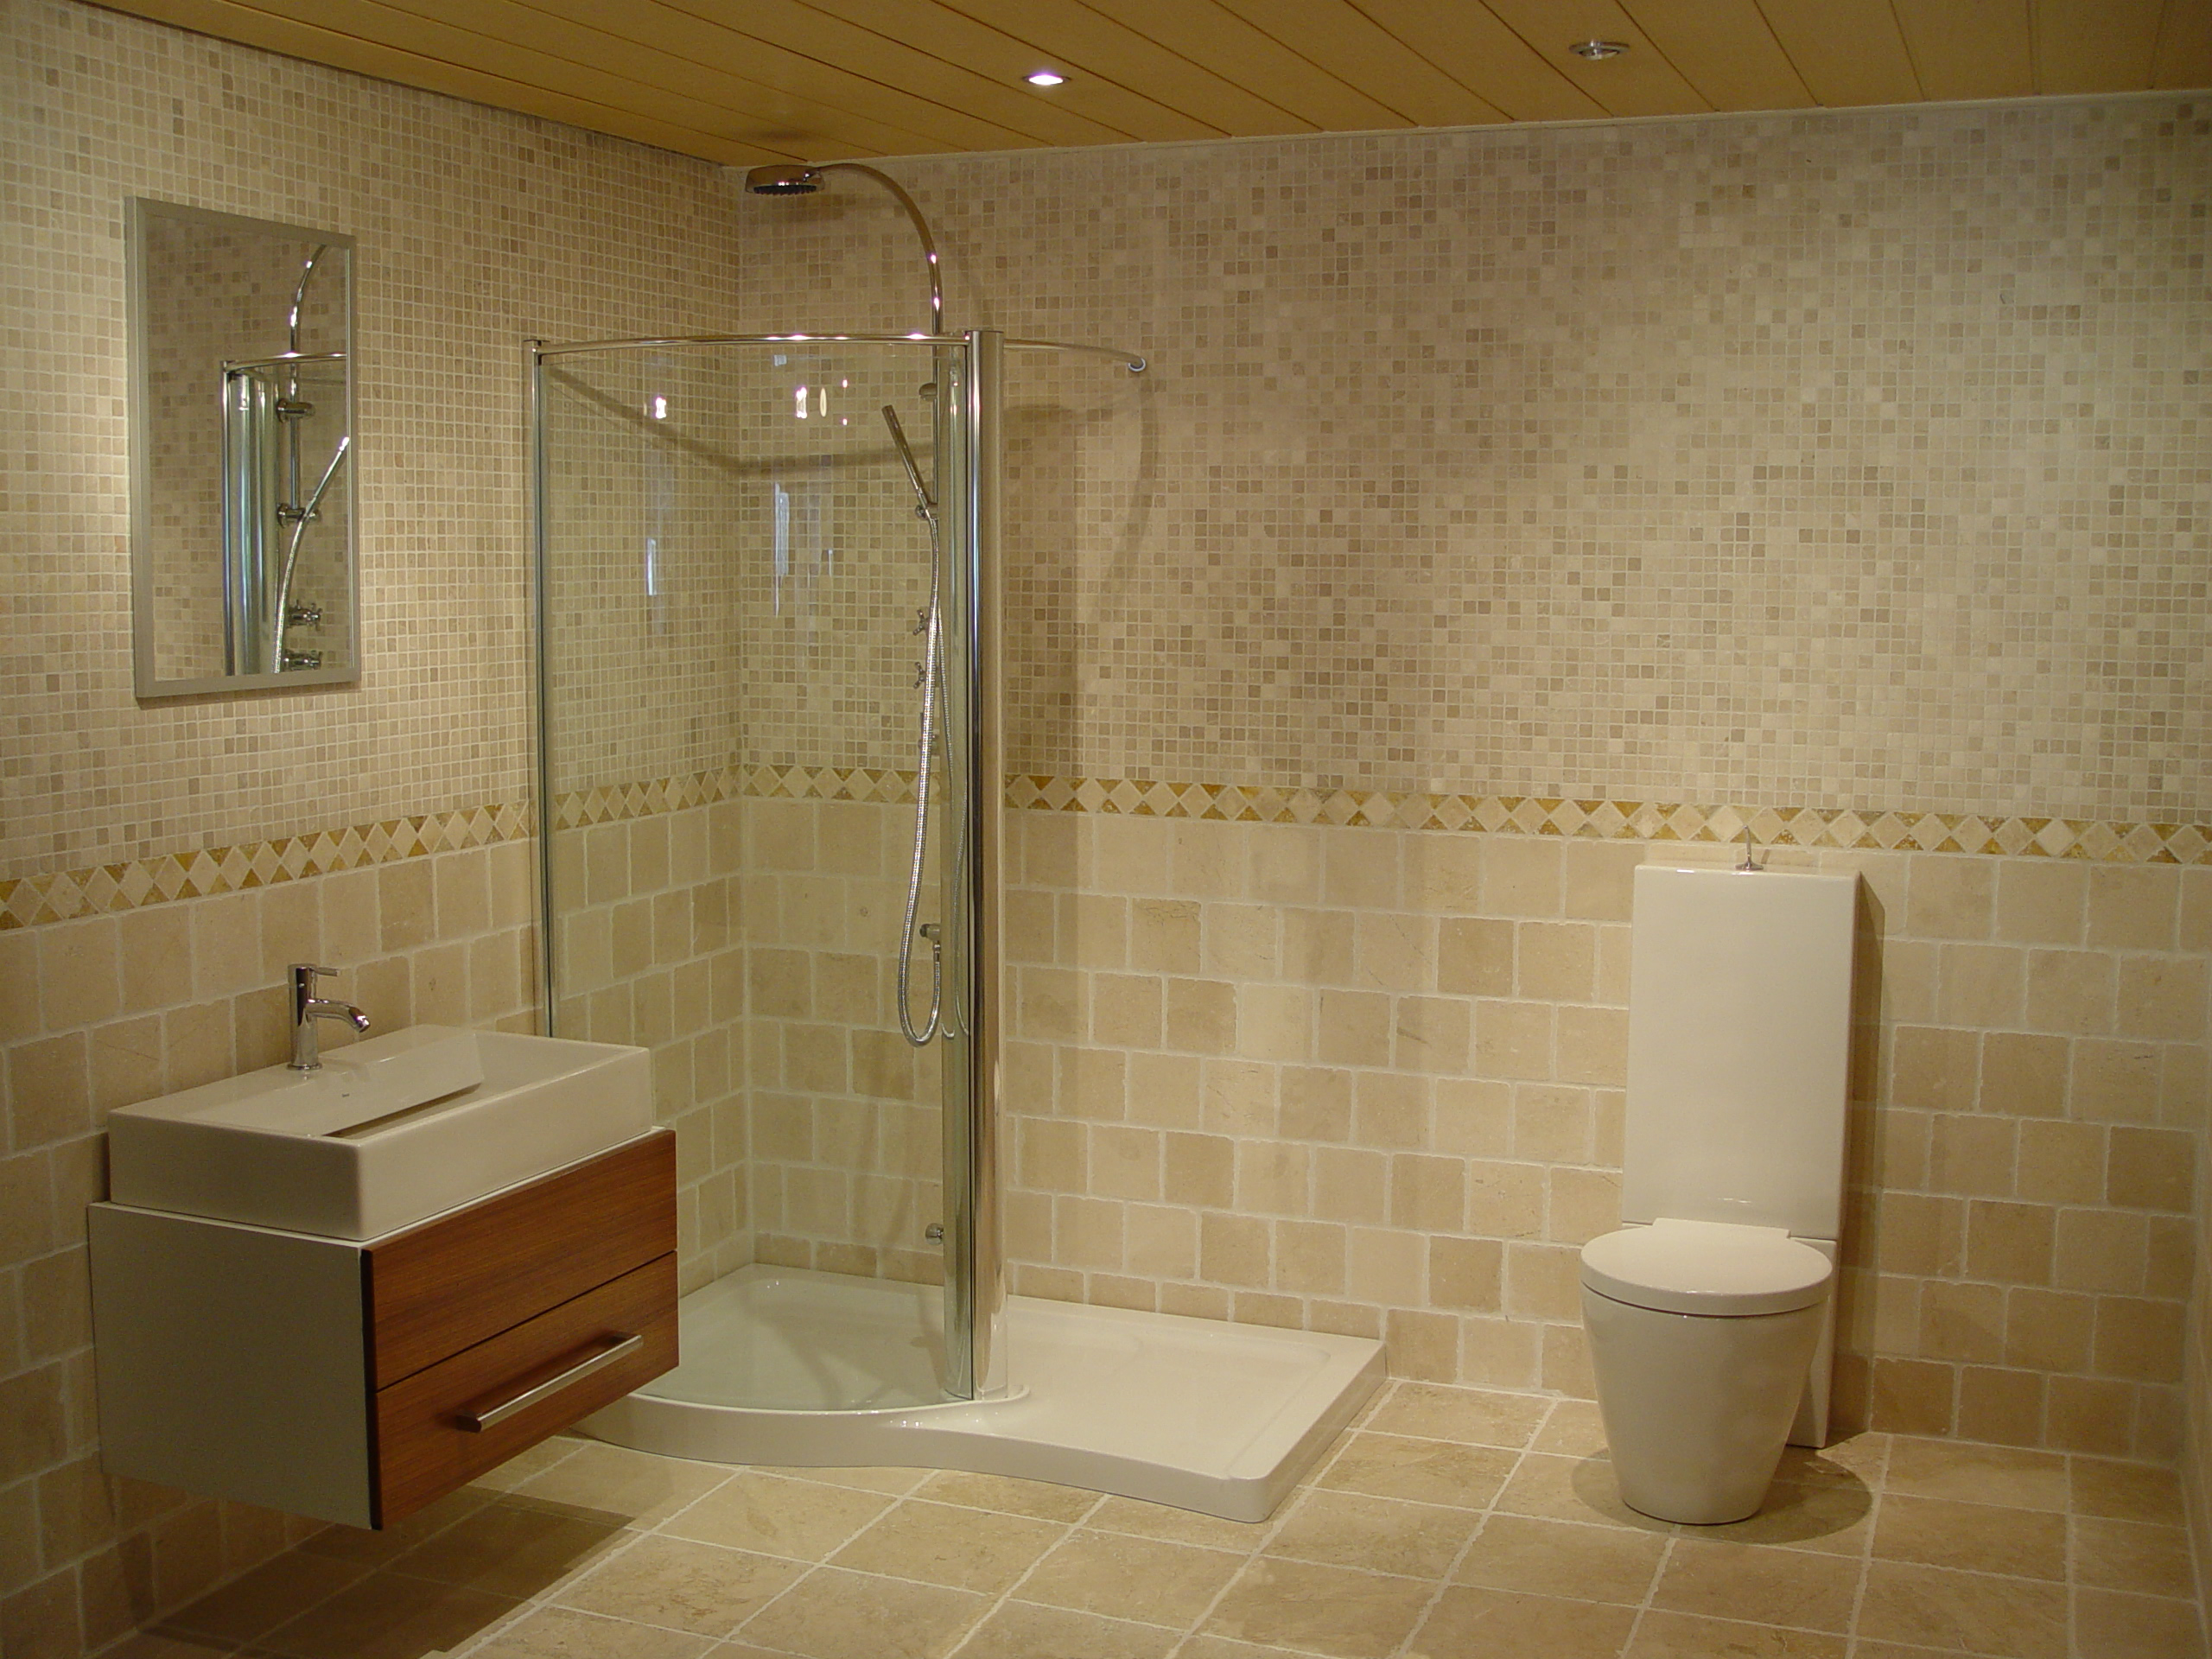 Bathroom tile design ideas to clean ranginess in the bathroom